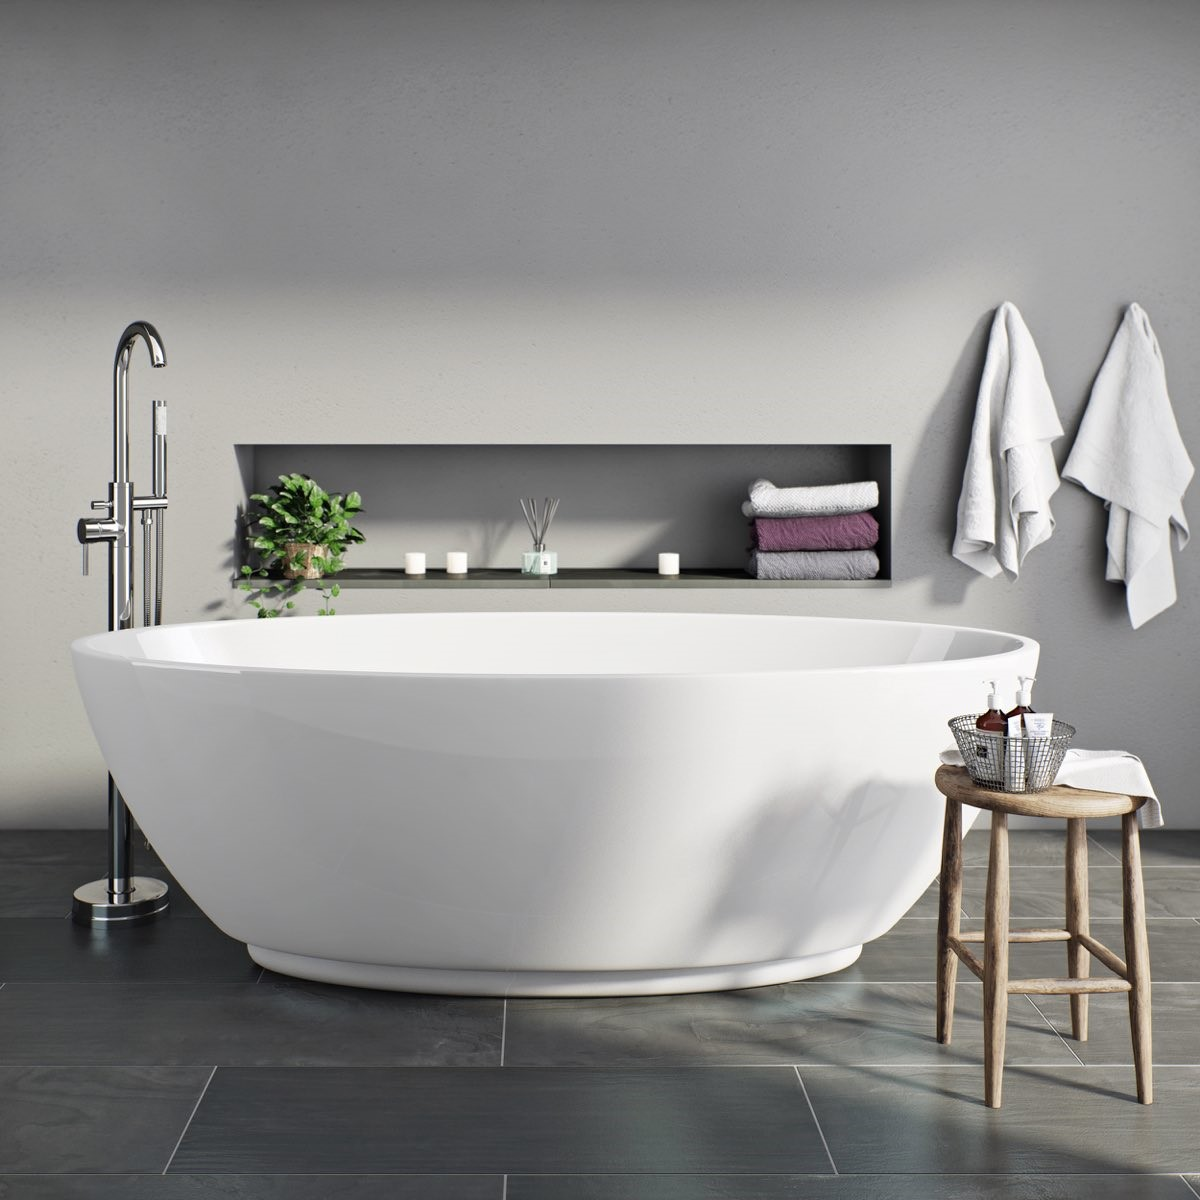 Freestanding bath. Renovated